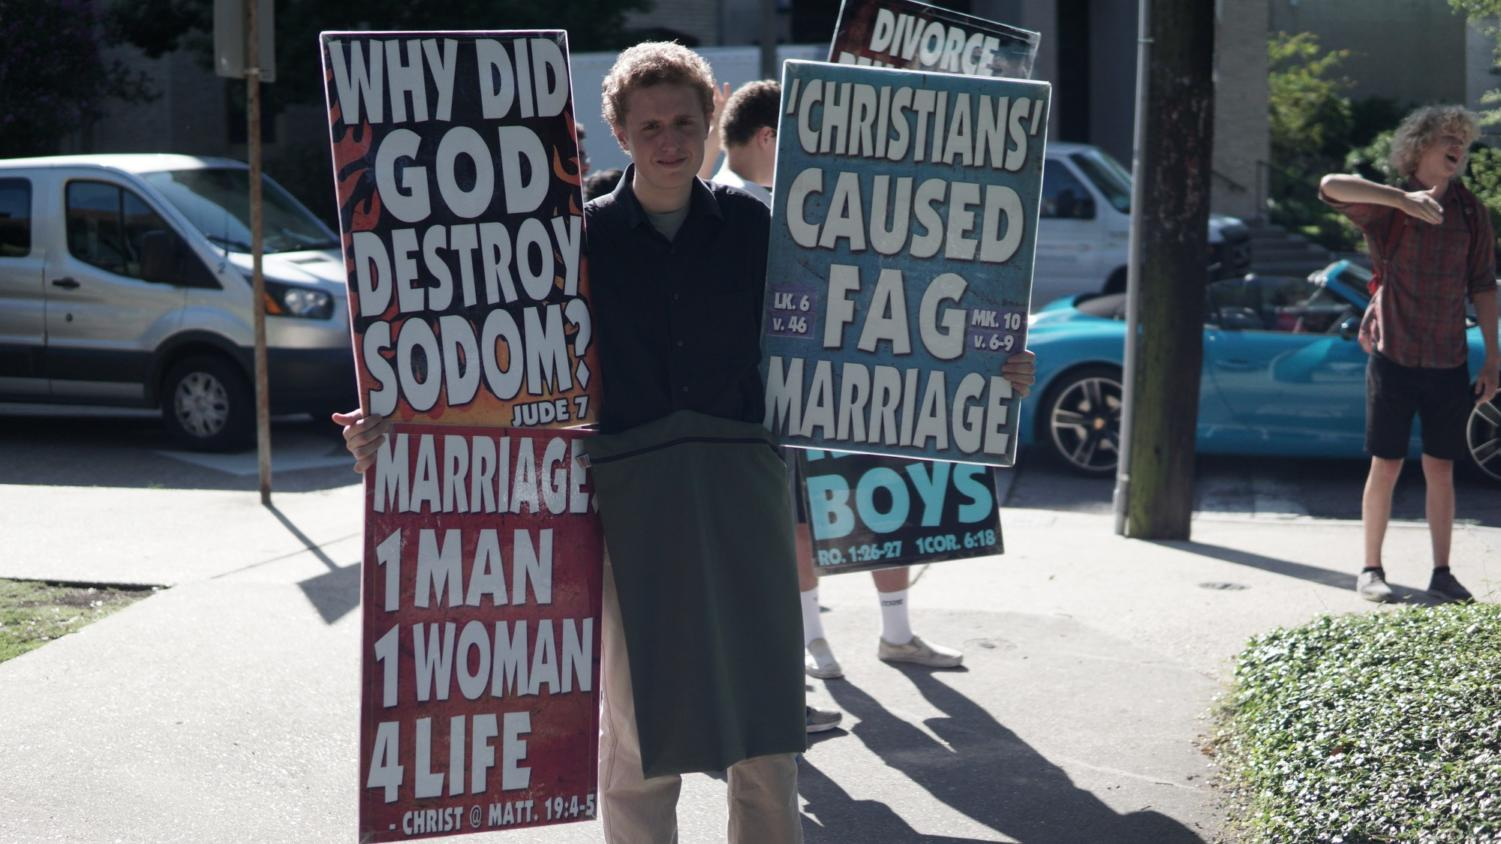 A+Westboro+Baptist+Church+member+displaying+his+signs+on+Loyola%27s+campus.+Photo+credit%3A+Jacob+Meyer